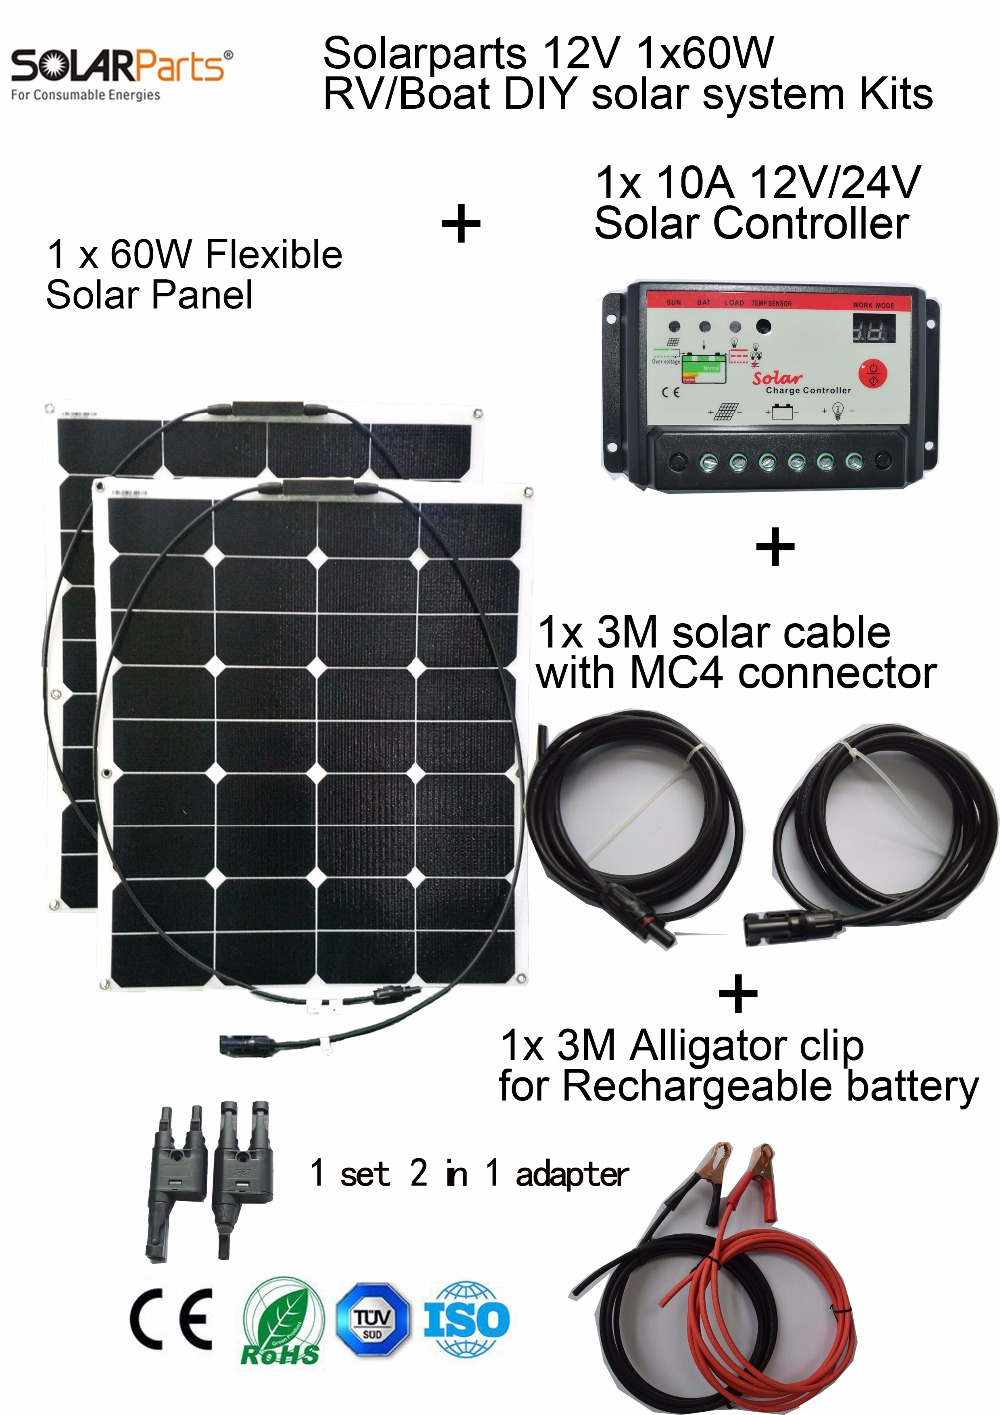 Boguang 2X60W ETFE flexible solar panel DIY RV/boat Kits system with 2x60 solar panel+1x10A controller+1set 3M MC4 cable & cilp. solarparts 100w diy rv marine kits solar system1x100w flexible solar panel 12v 1 x10a 12v 24v solar controller set cables cheap